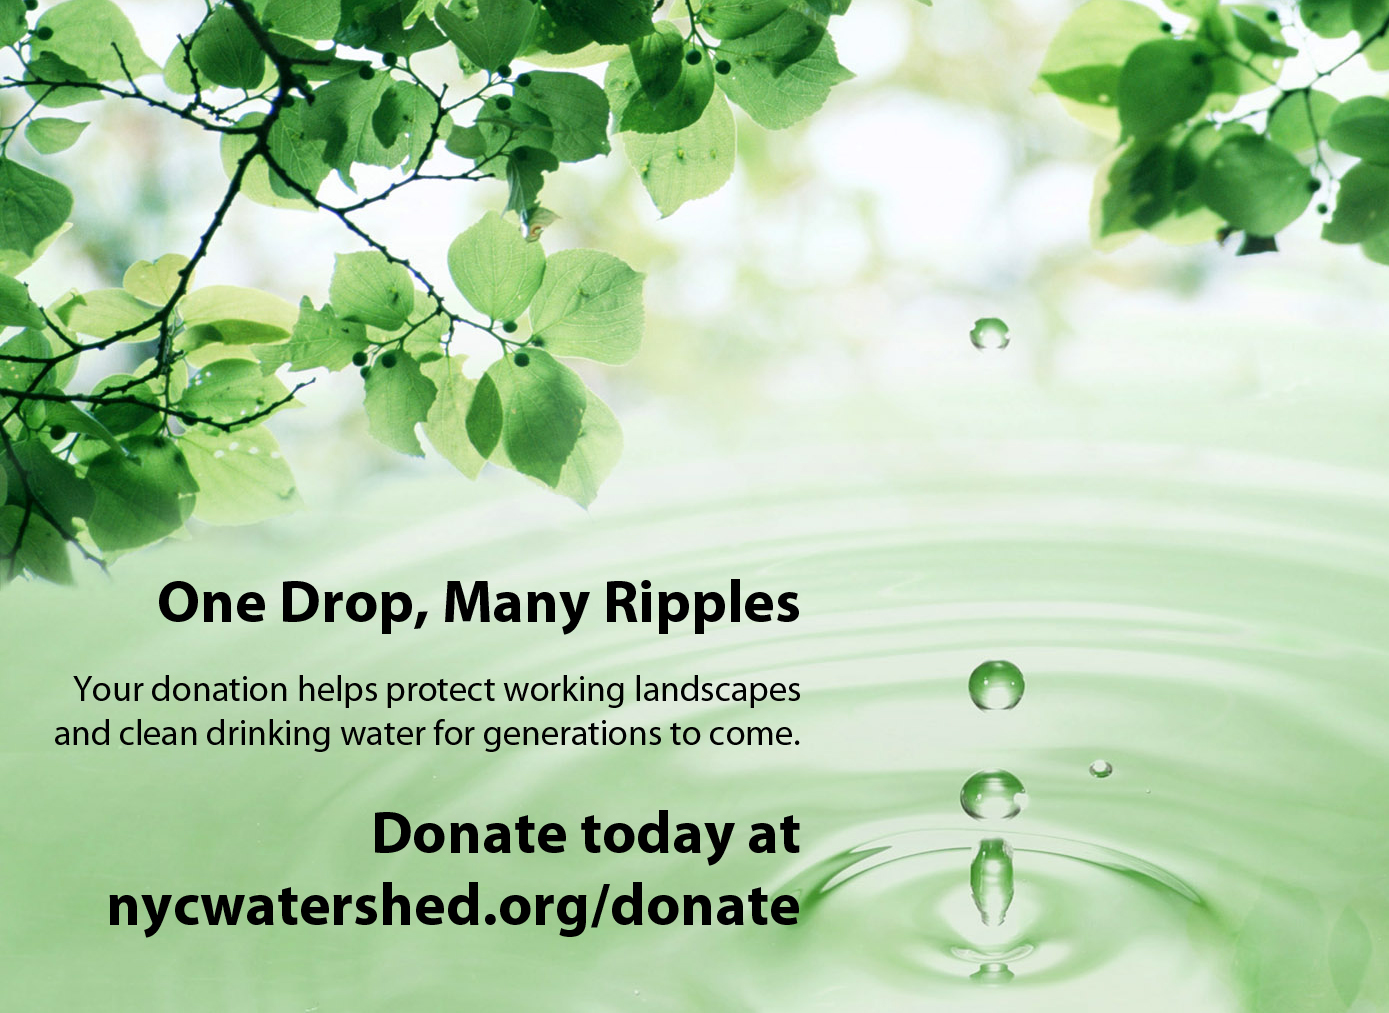 www.nycwatershed.org/donate